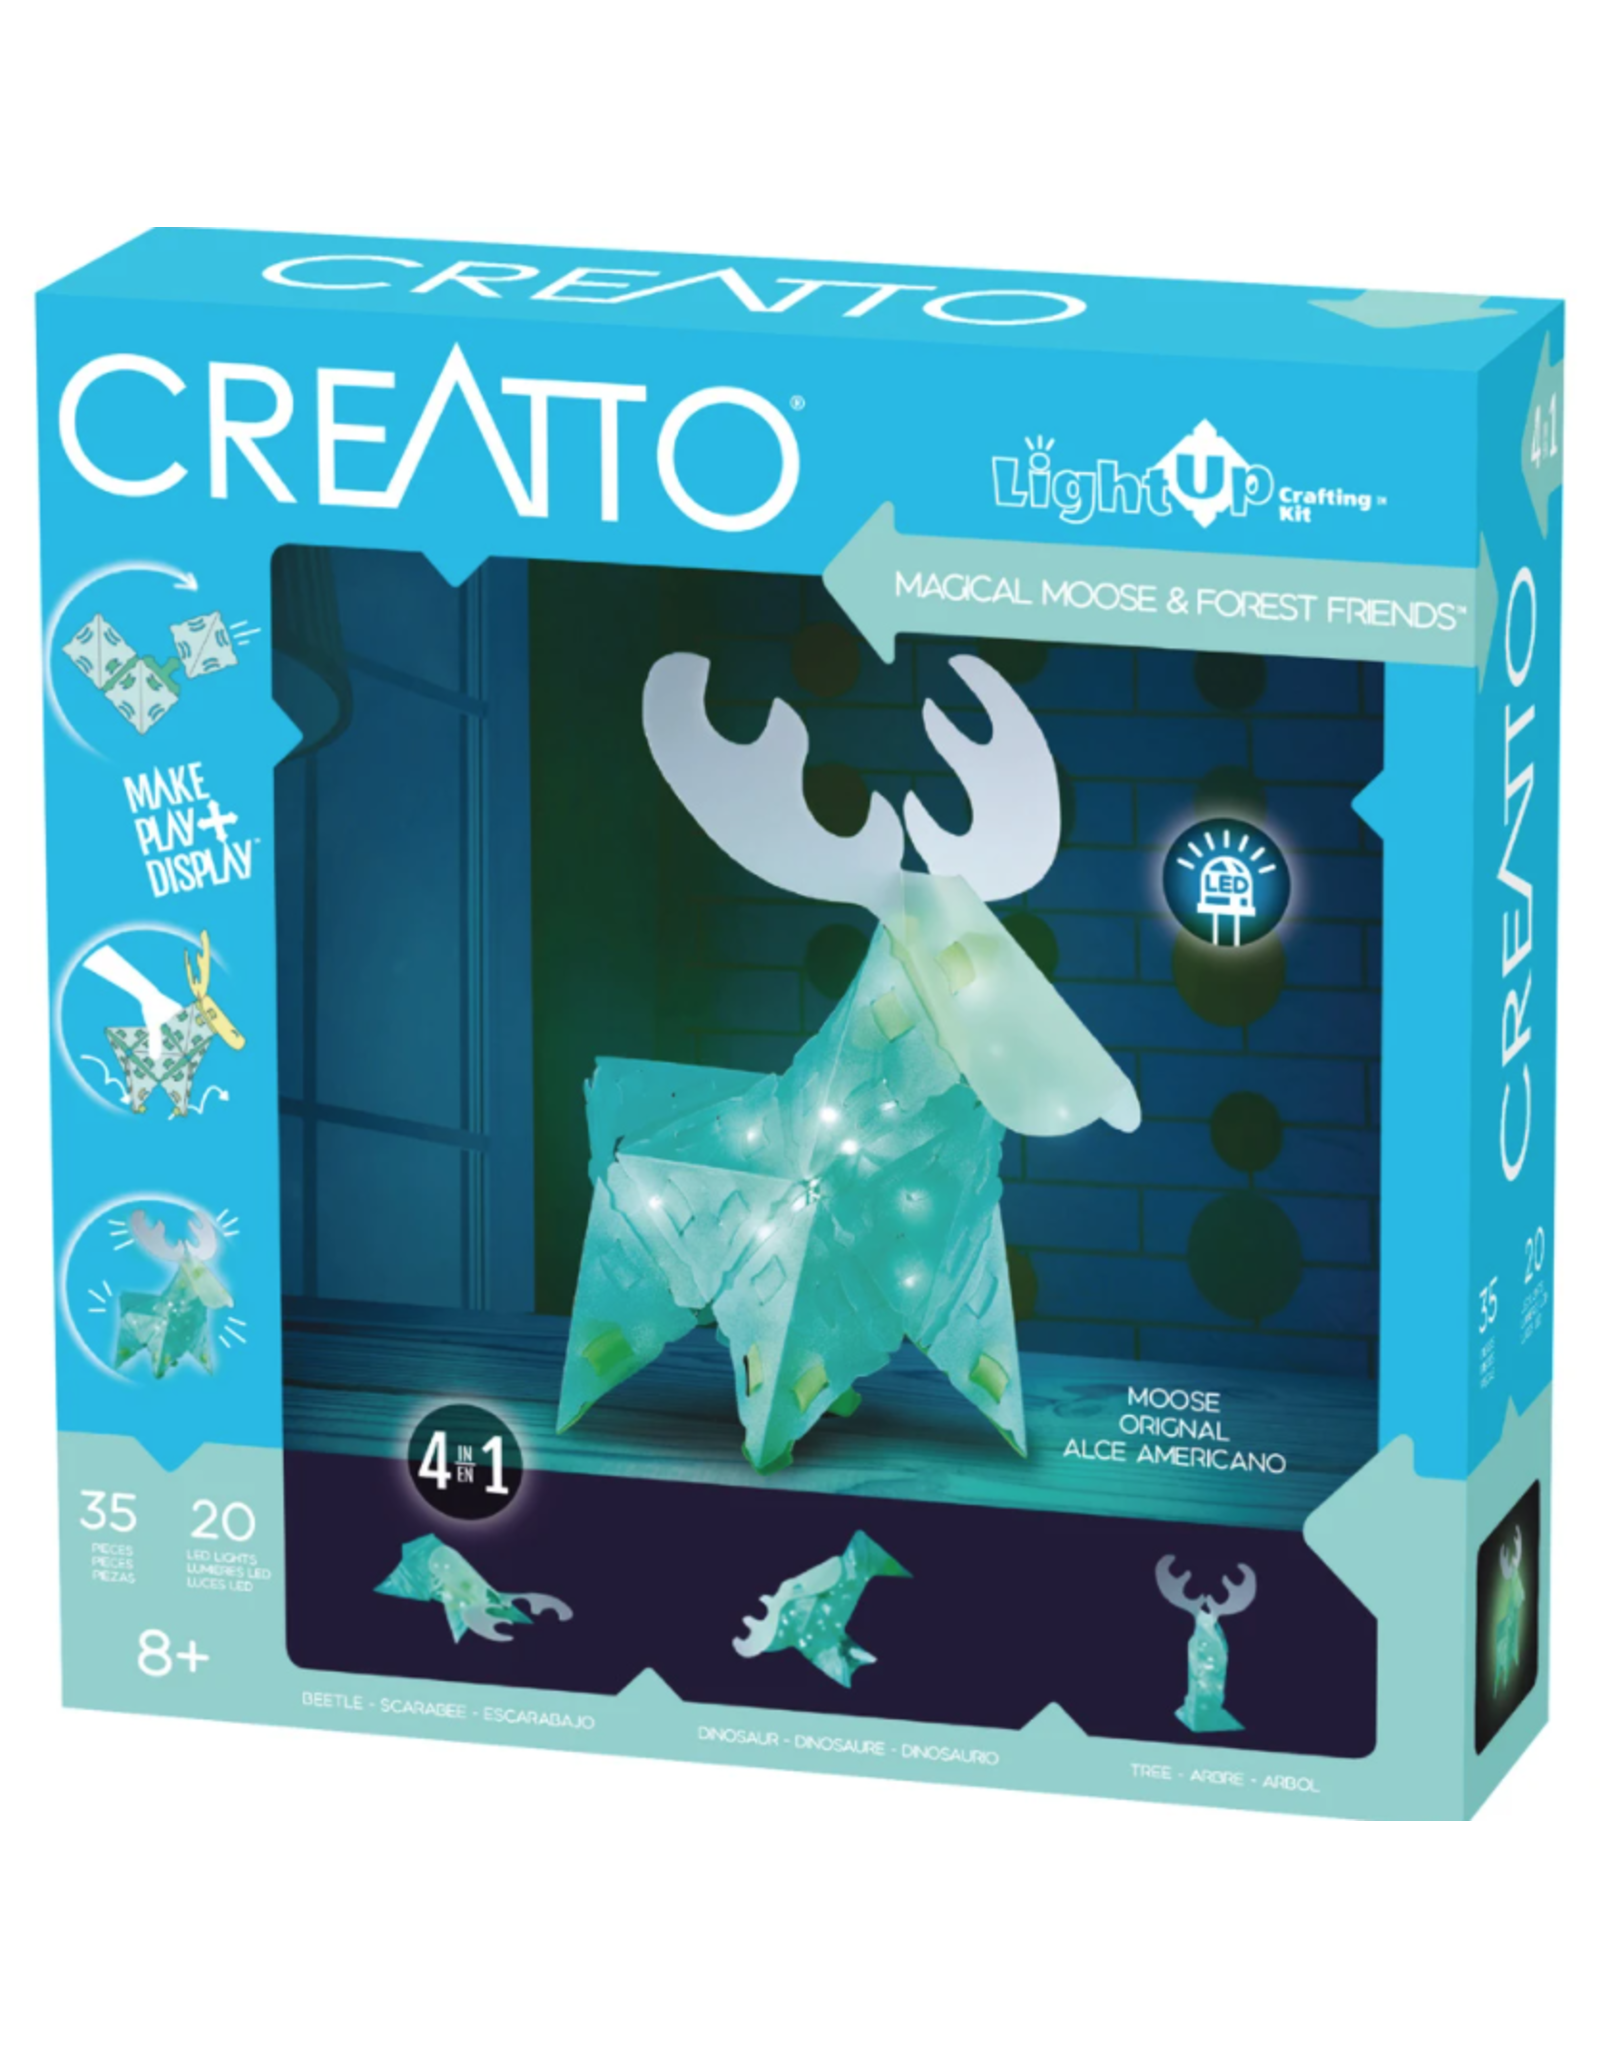 Thames & Kosmos Creatto Magical Moose & Forest Friends